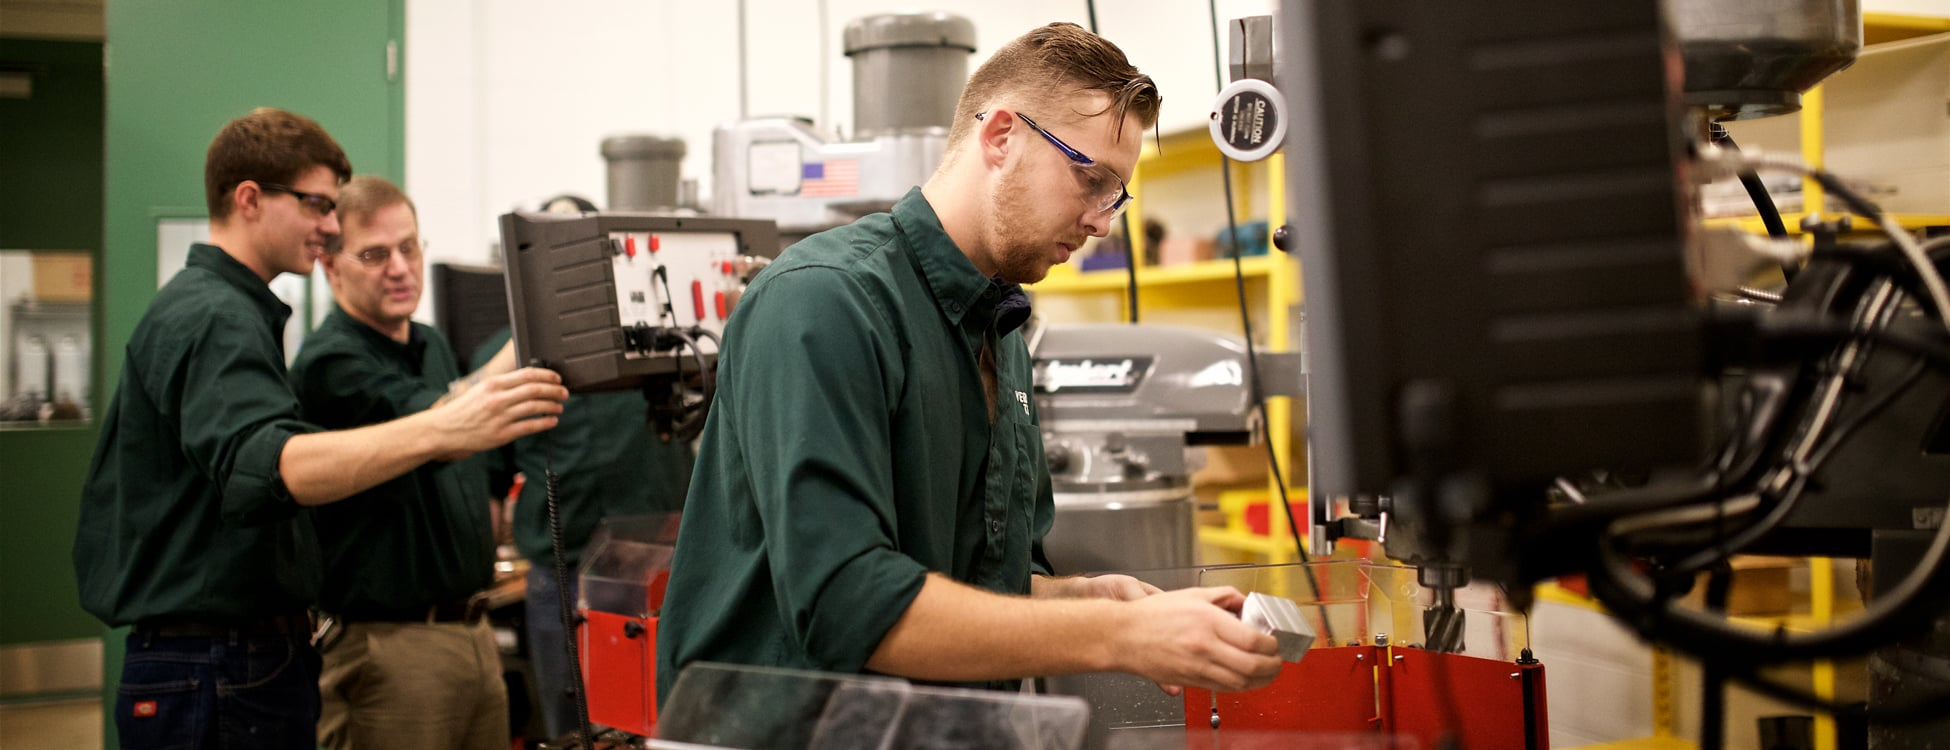 Male student works with a metal lathe machine in the manufacturing lab on the Randolph Center campus.